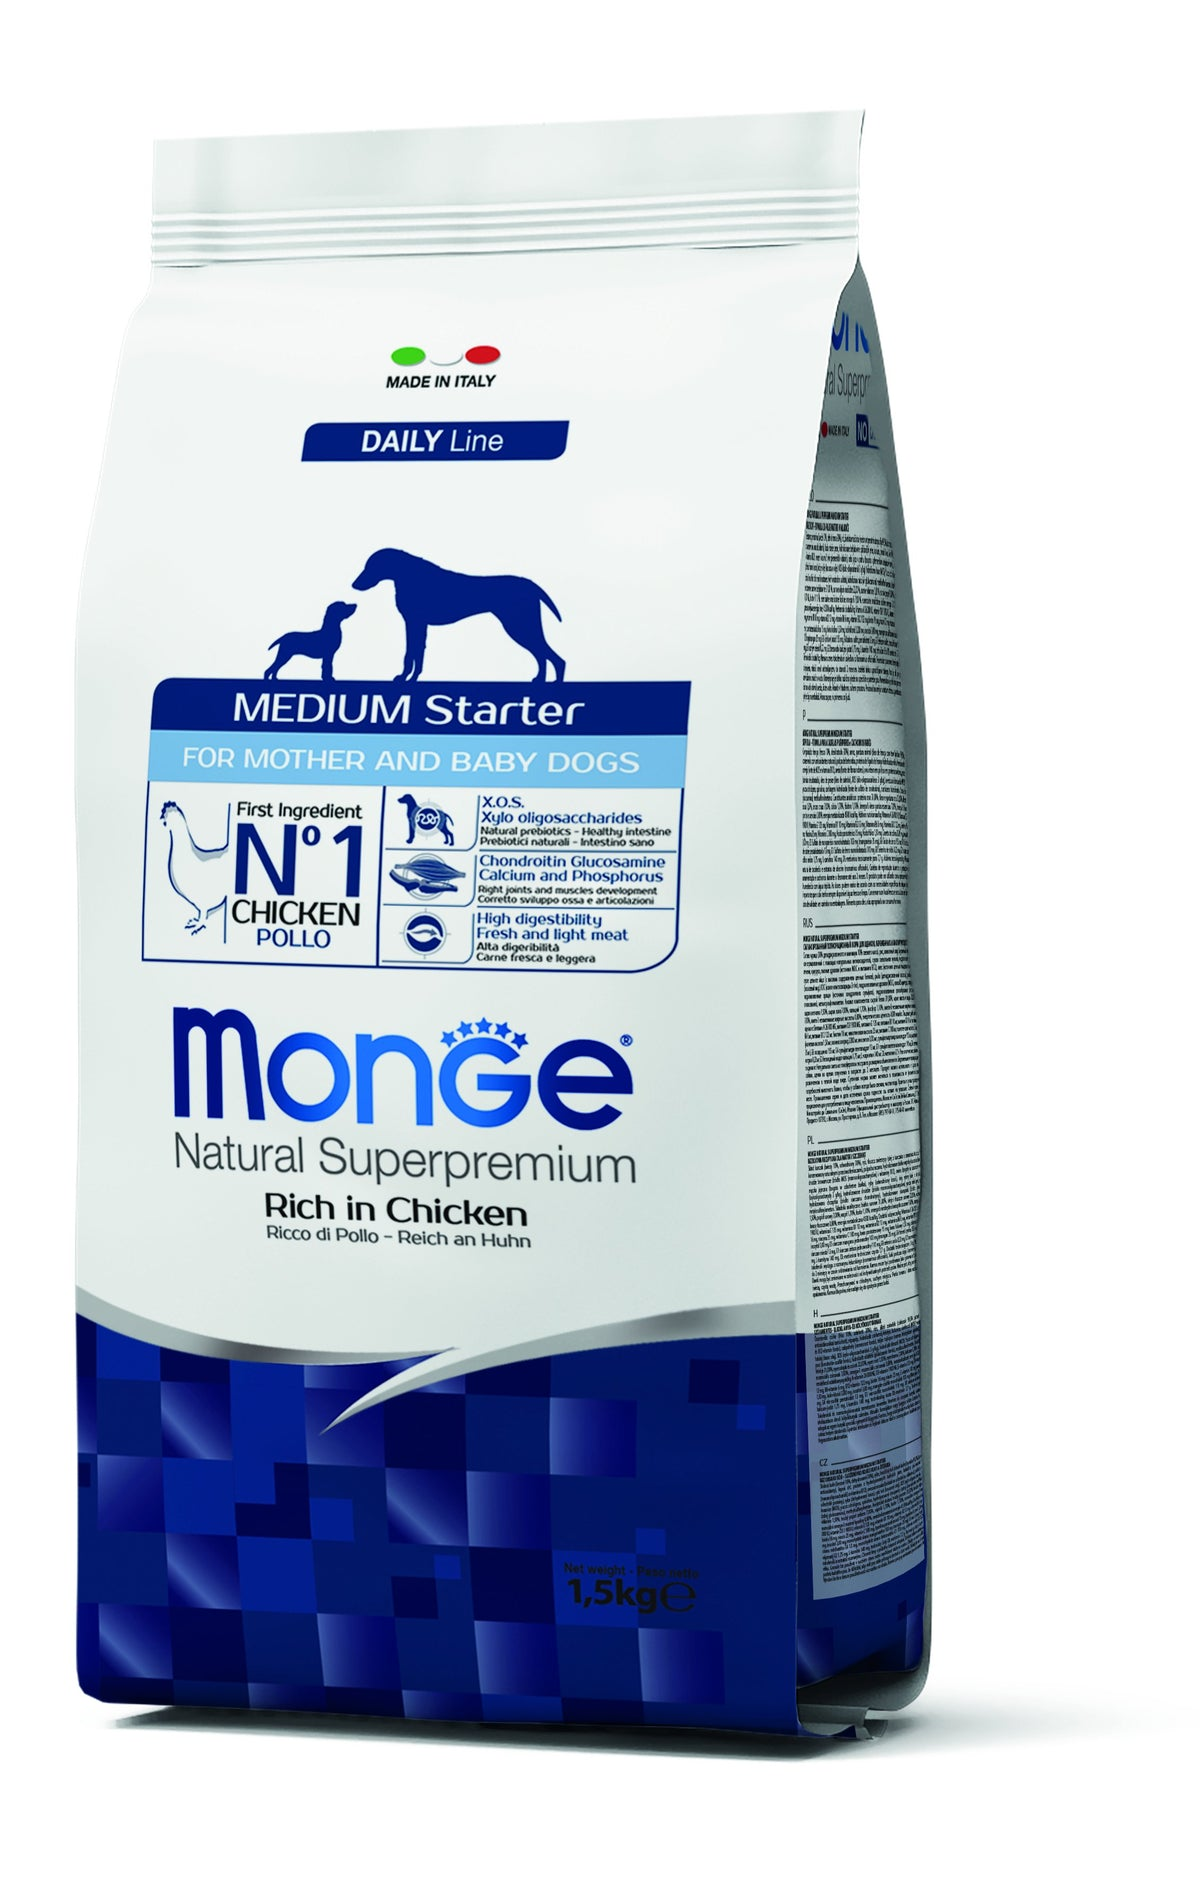 Monge Natural Superpremium secco cane NEW LINE 1.5kg MEDIUM STARTER MEDIUM STARTER POLLO